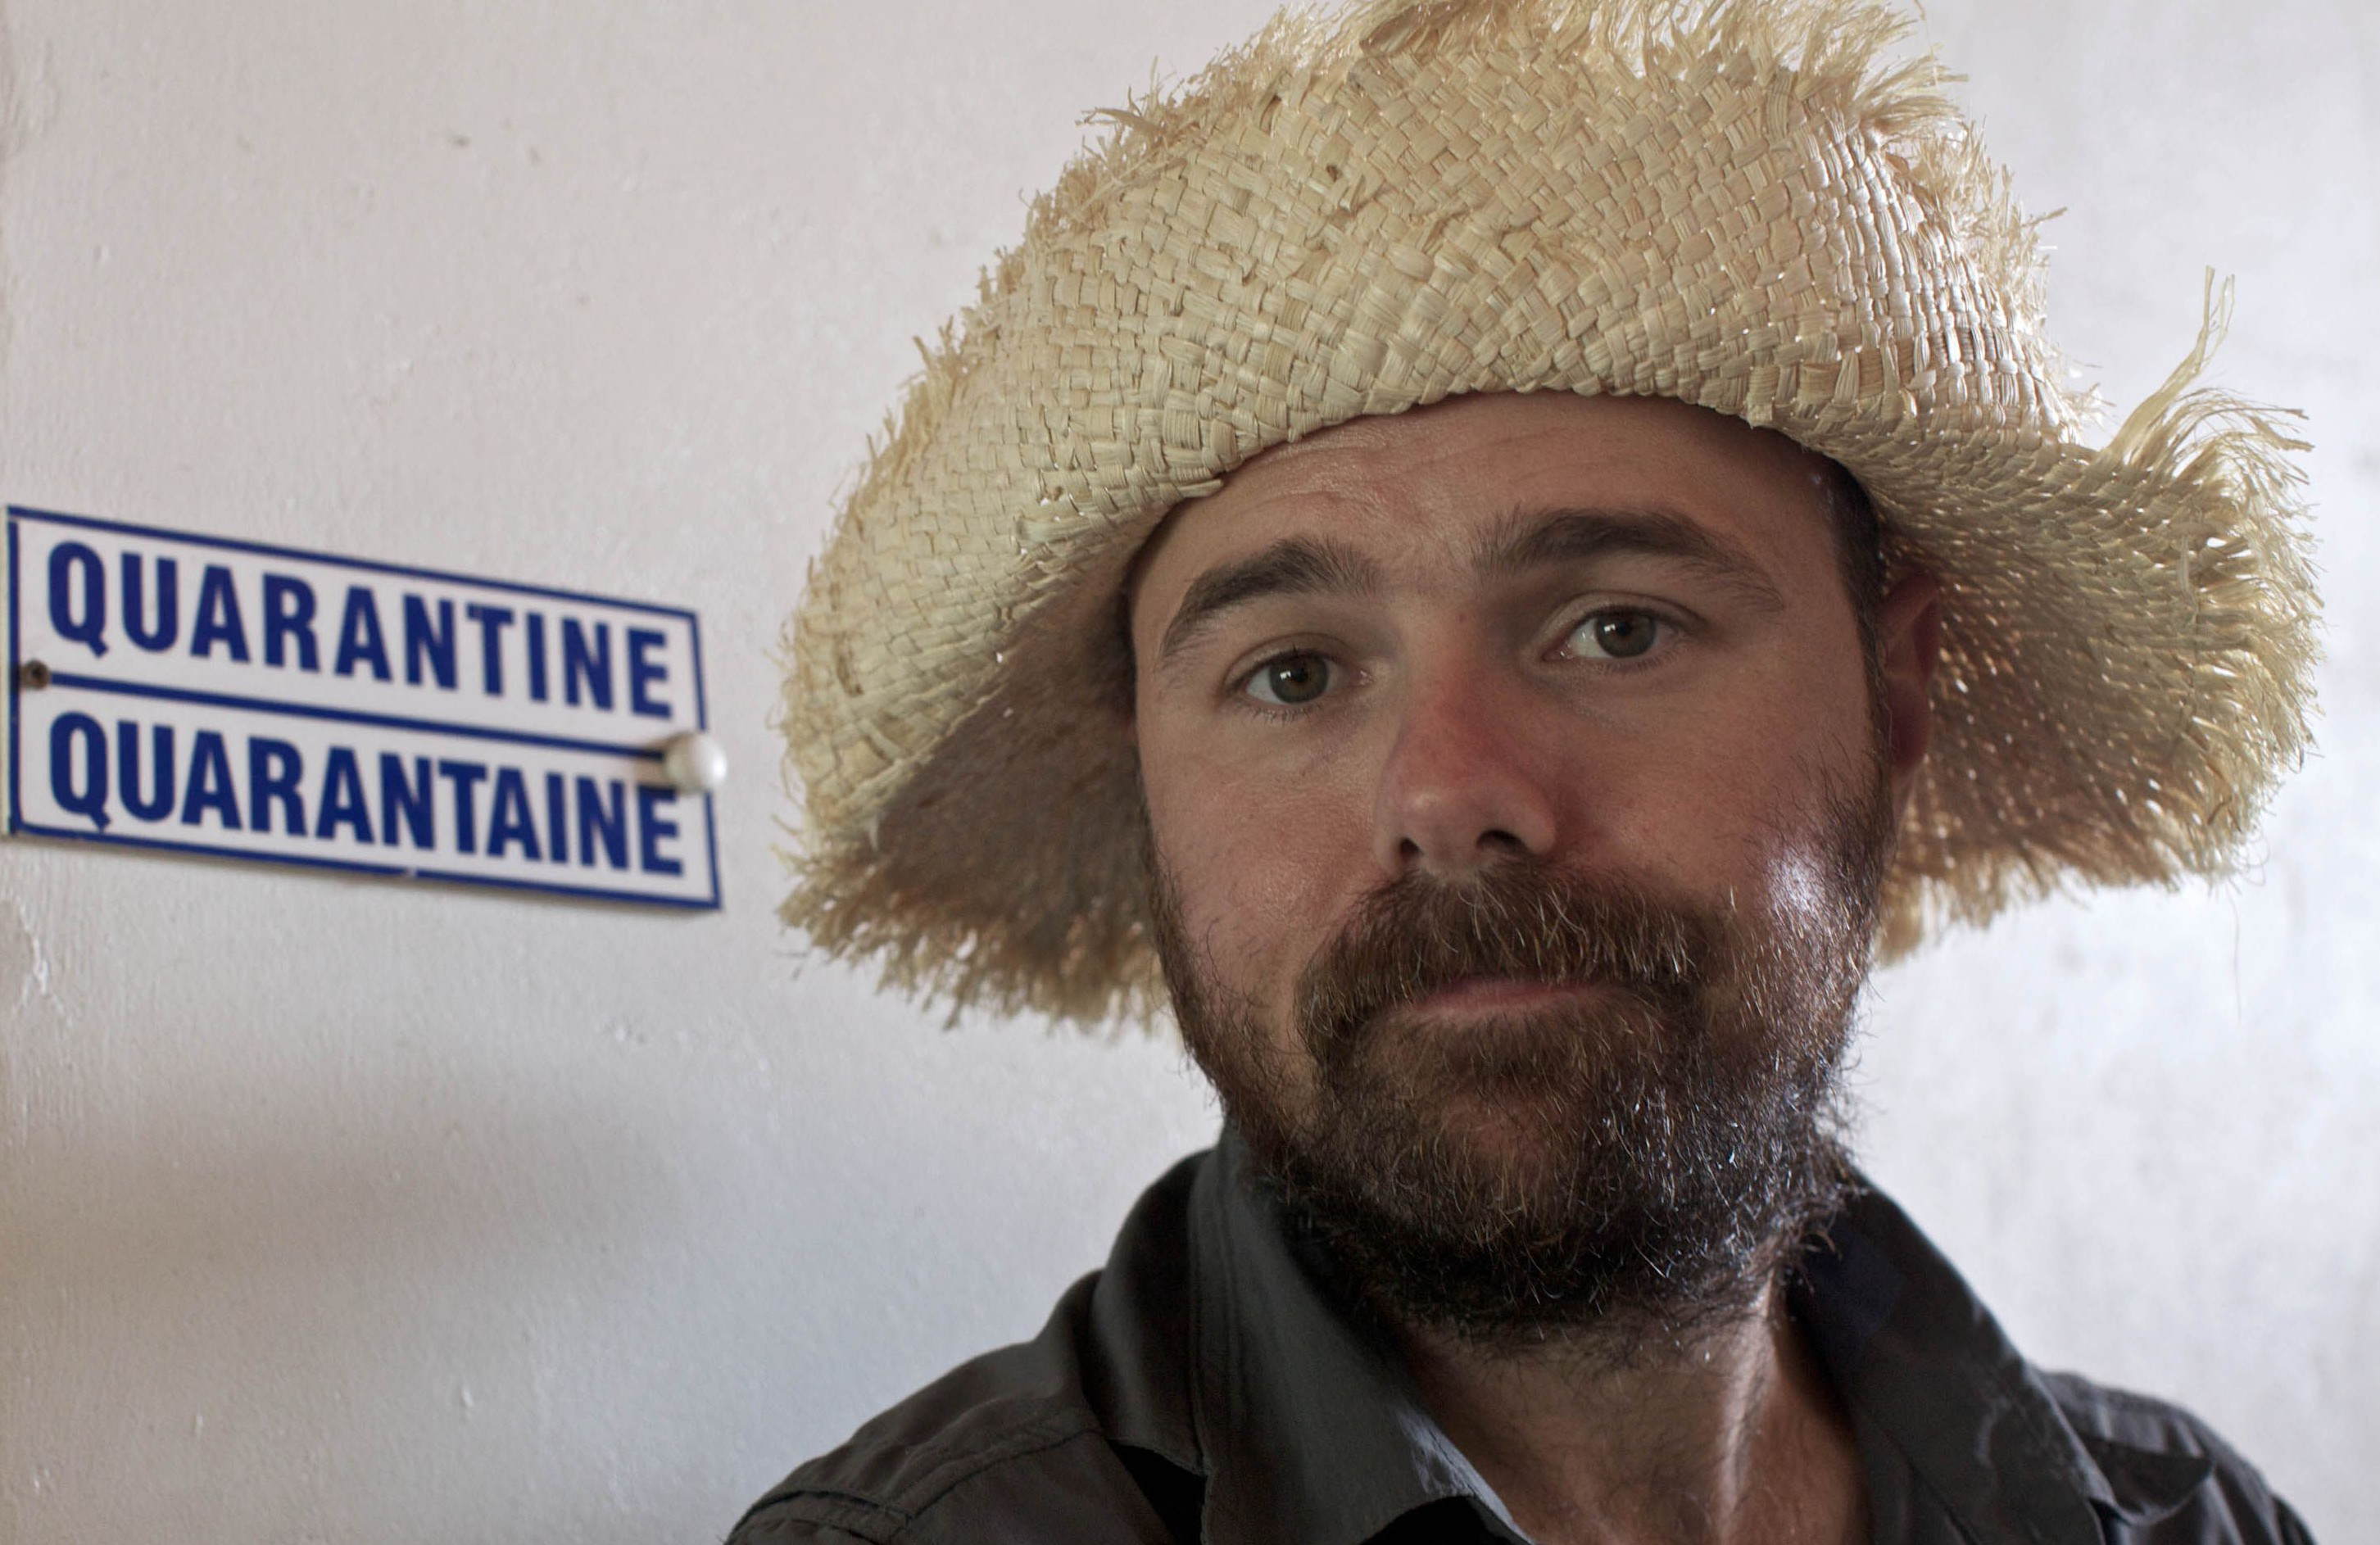 Karl Pilkington quits acting after having to wear 'f***ing stupid wig' in Derek